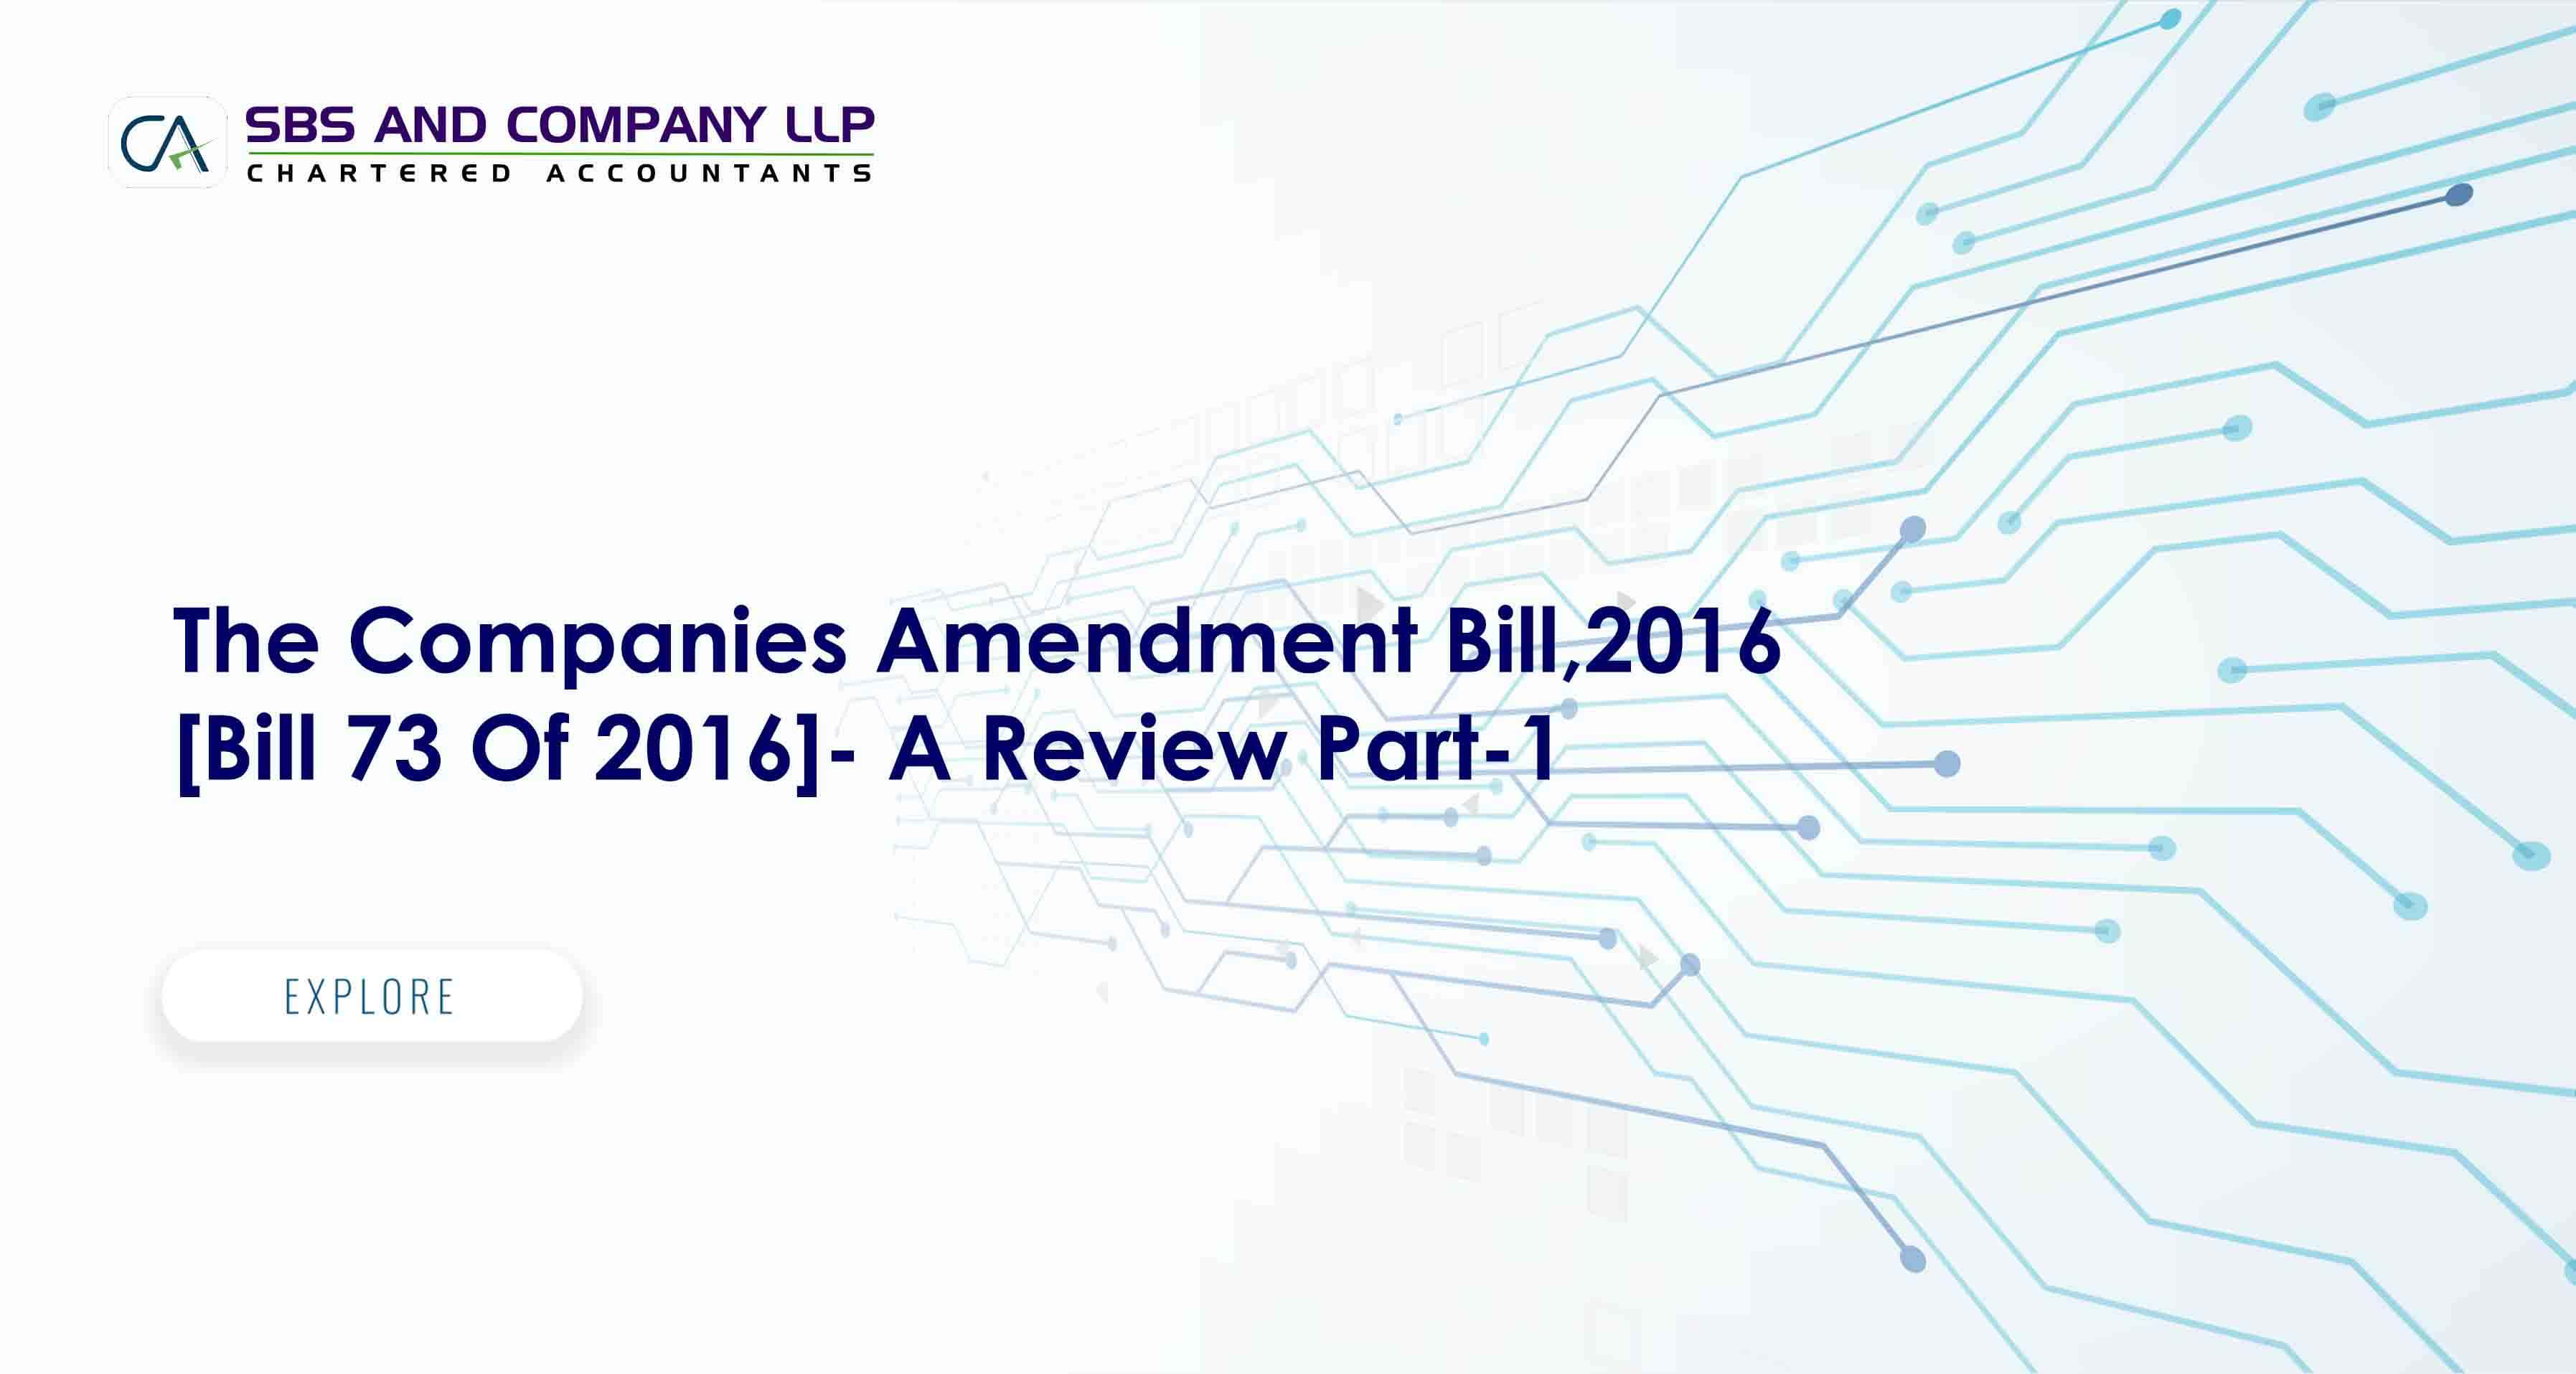 The Companies Amendment Bill,2016 [Bill 73 Of 2016]- A Review Part-1